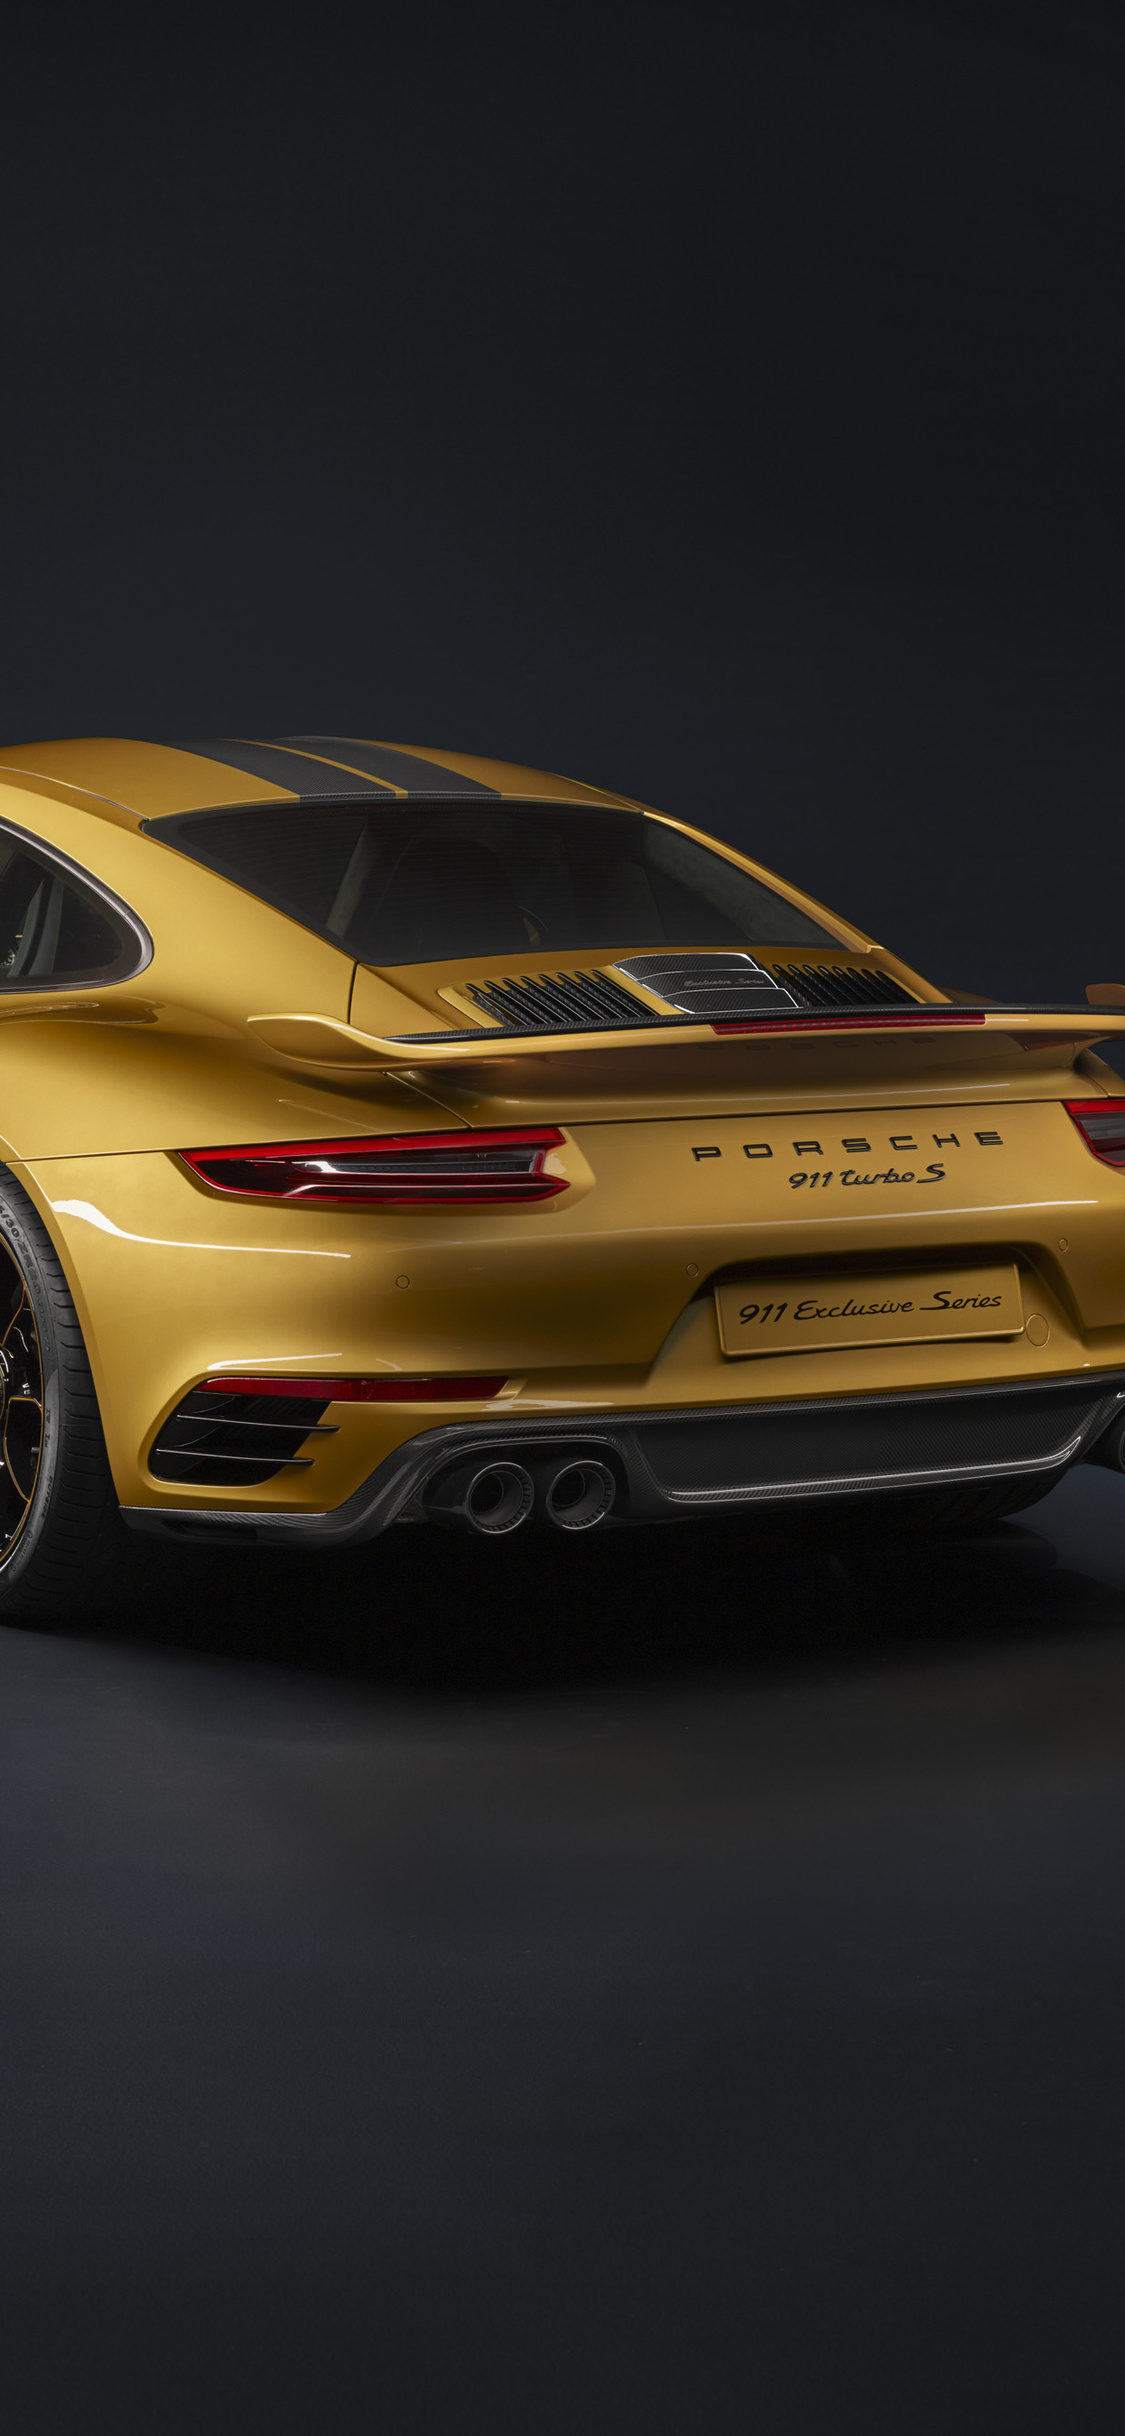 Porsche 911 Wallpaper Iphone Wallpaper Hd For Android